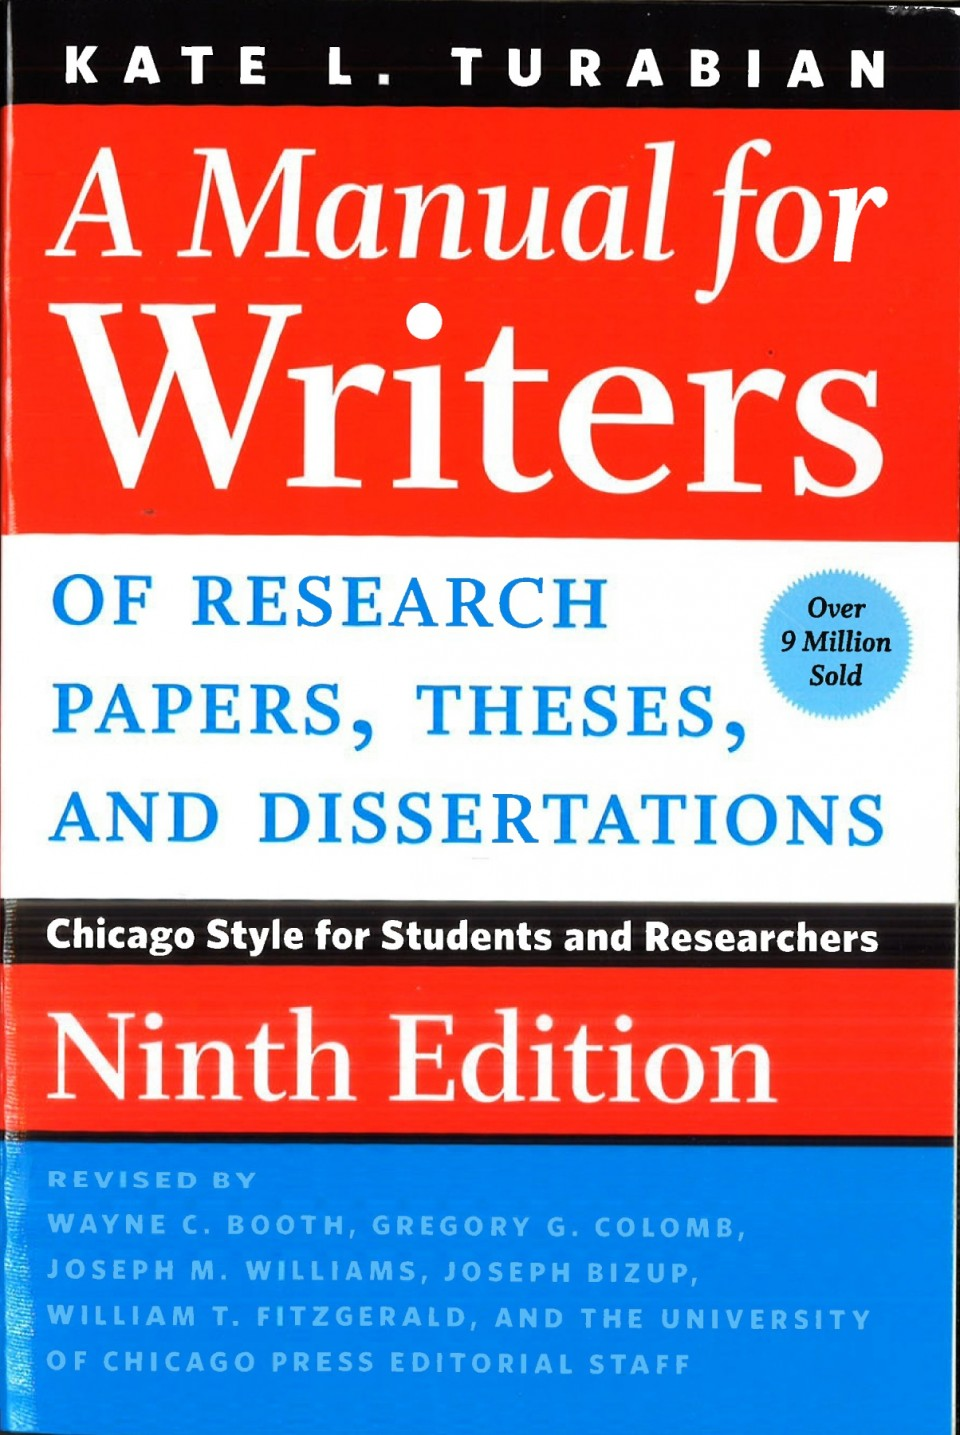 007 Research Paper Manual For Writers Of Papers Theses And Dissertations Amazing A Turabian Pdf 960